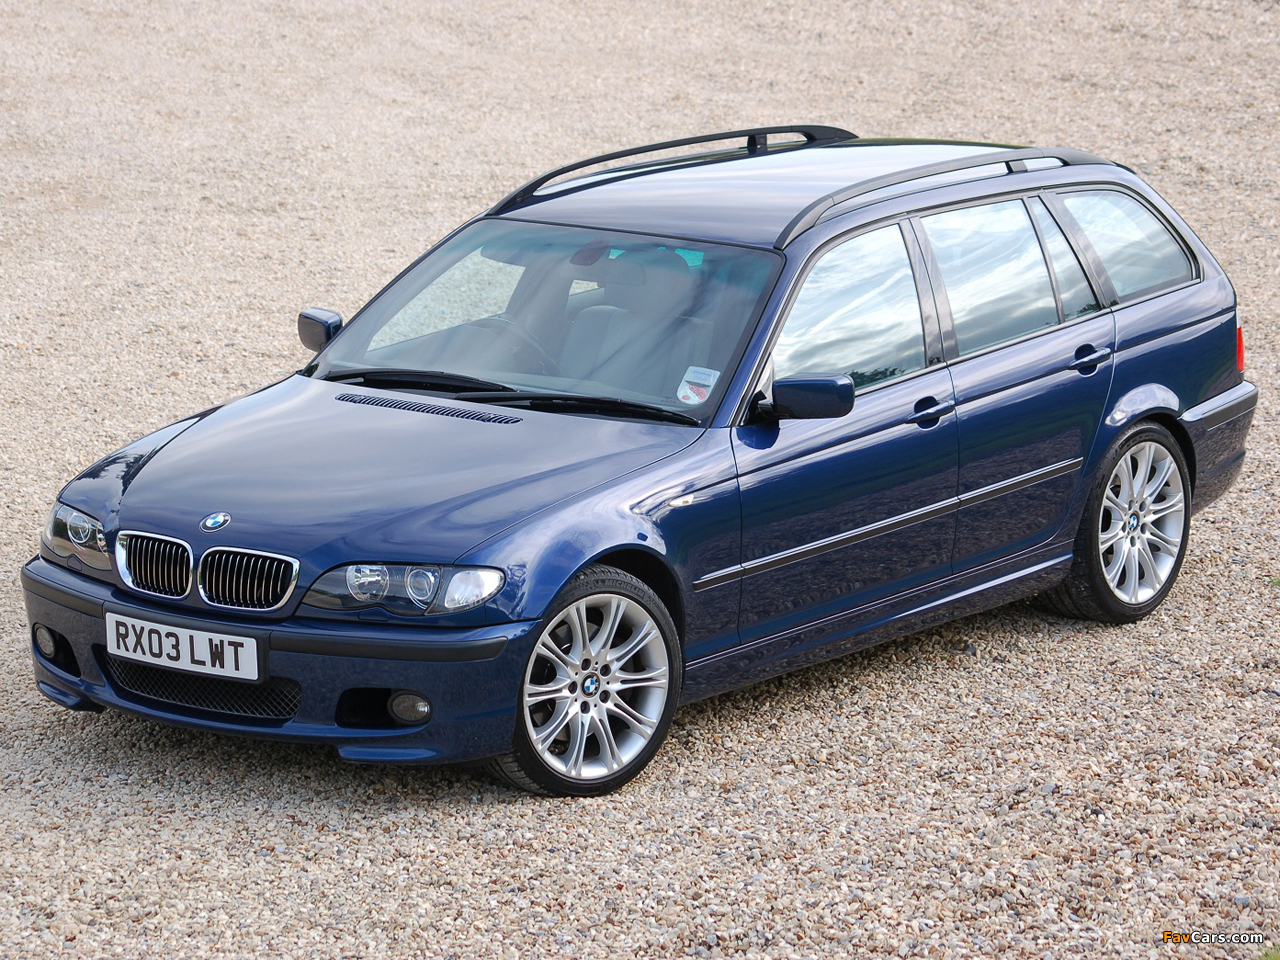 pictures of bmw 320d touring m sports package e46 2001 06 1280x960. Black Bedroom Furniture Sets. Home Design Ideas